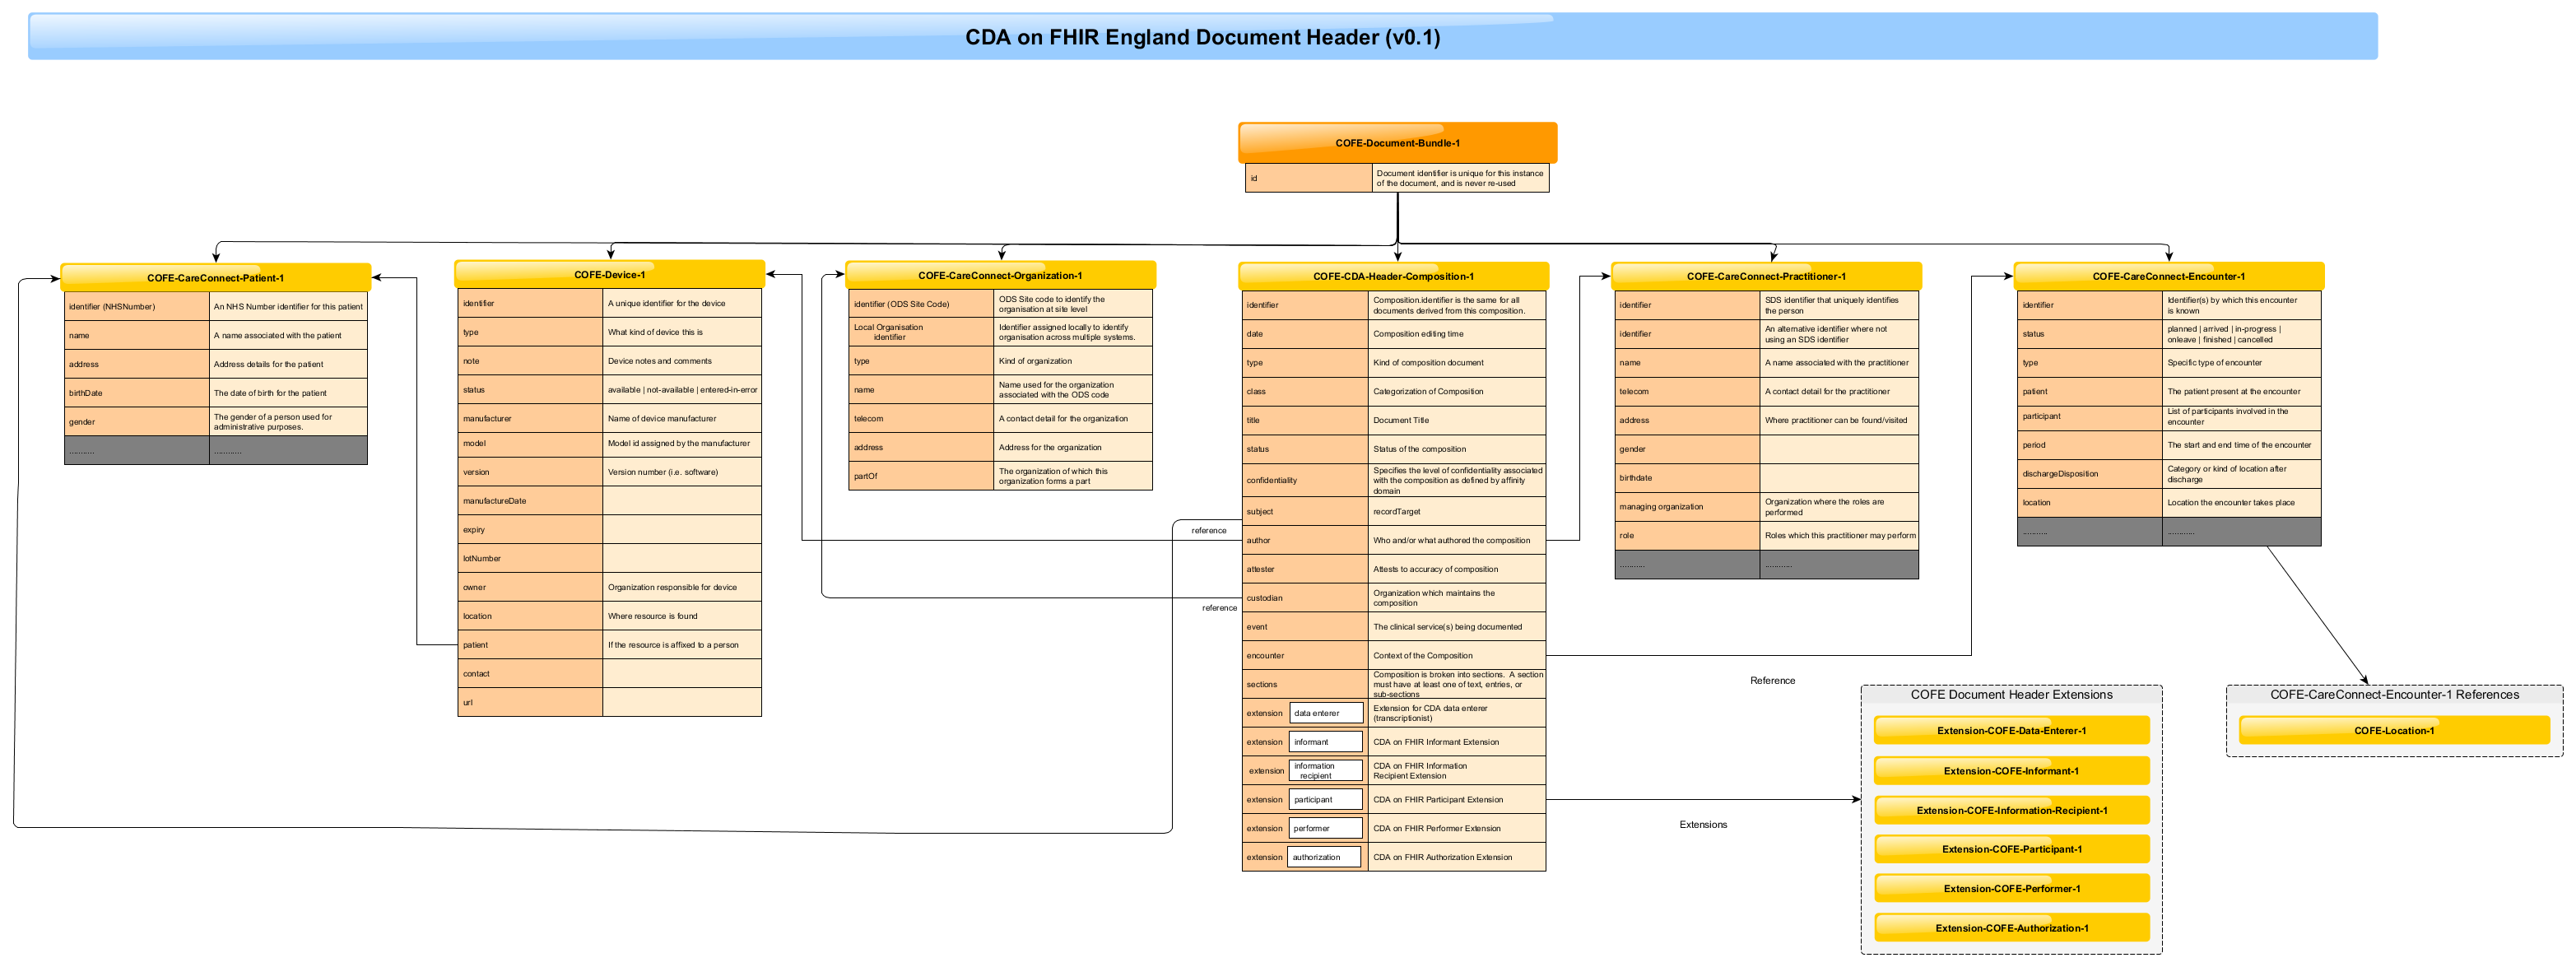 CDA On FHIR England - Document Header - FHIR Implementation